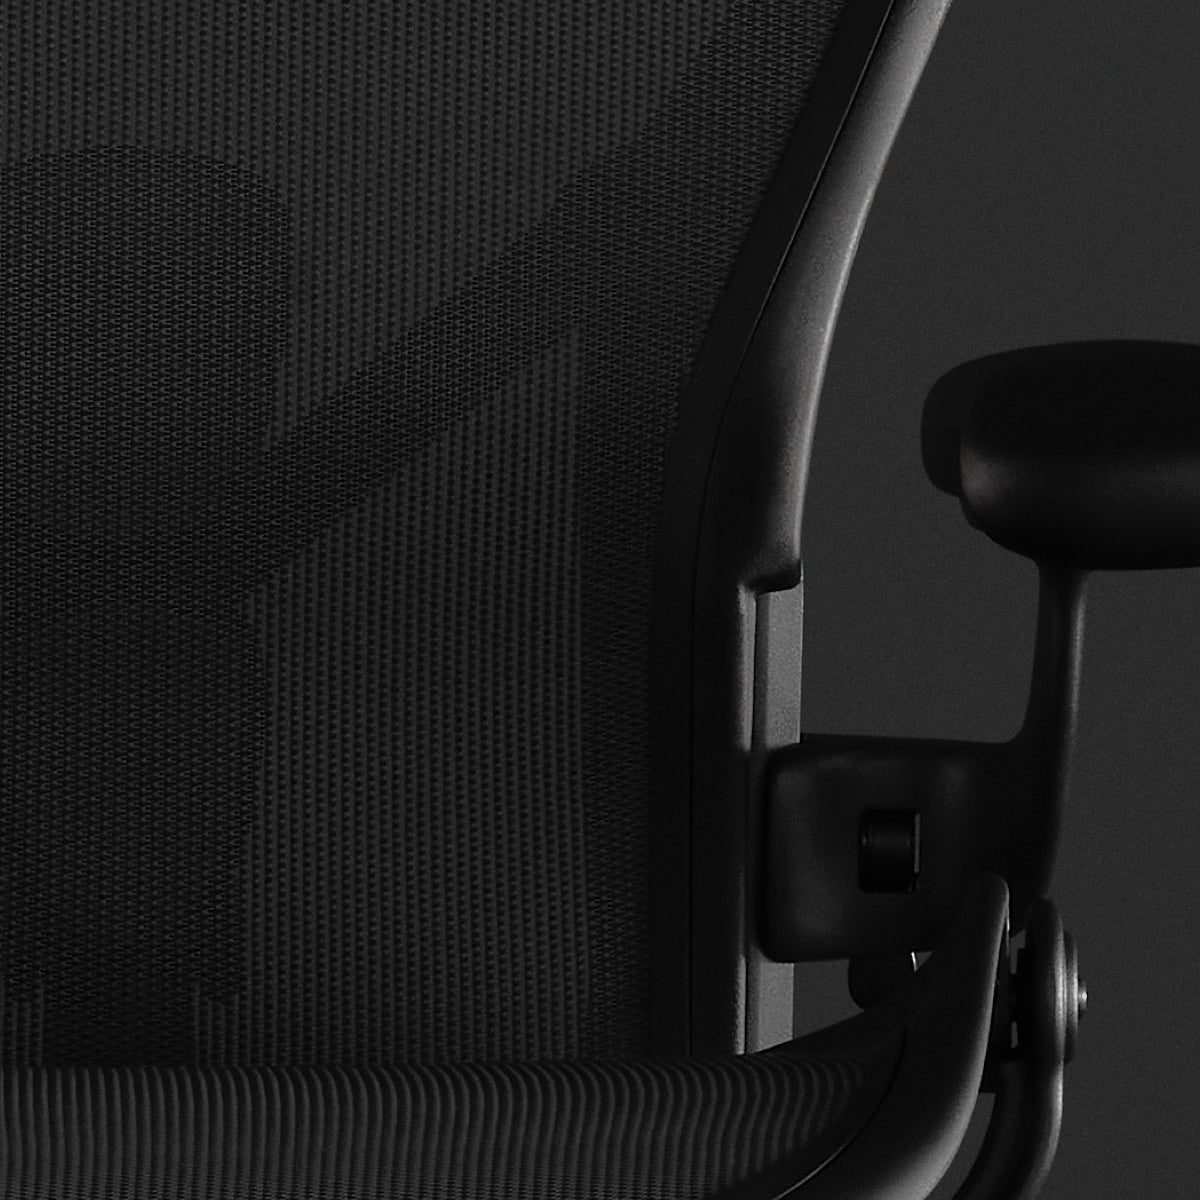 Embody Gaming Chair close-up on Sync Fabric in black with a black background